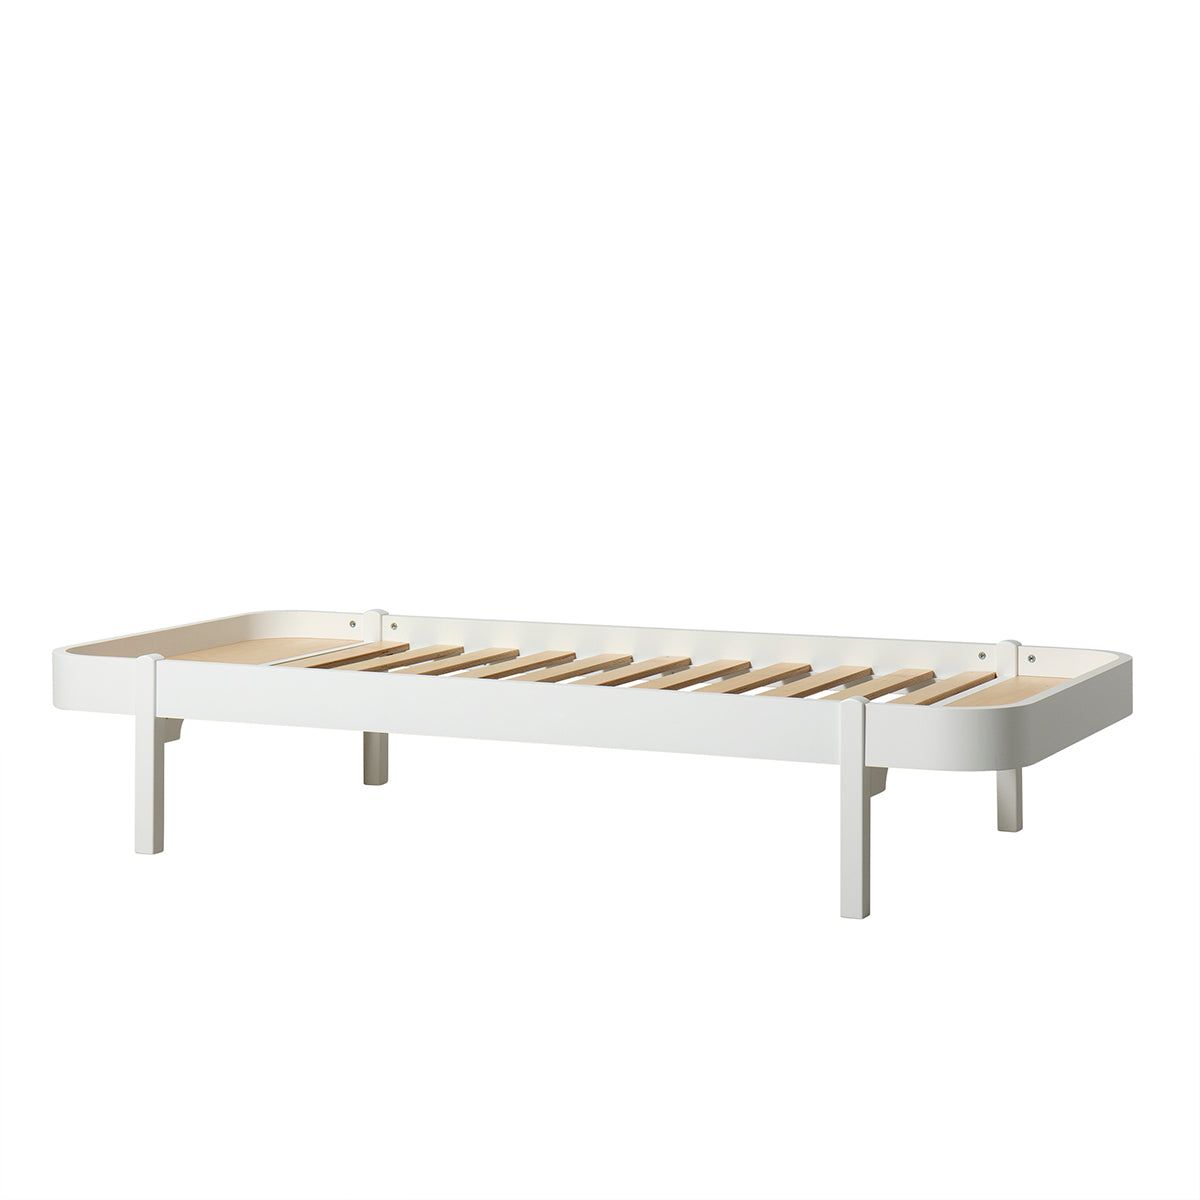 Oliver Furniture Wood Lounger, 90 x 200cm, weiss